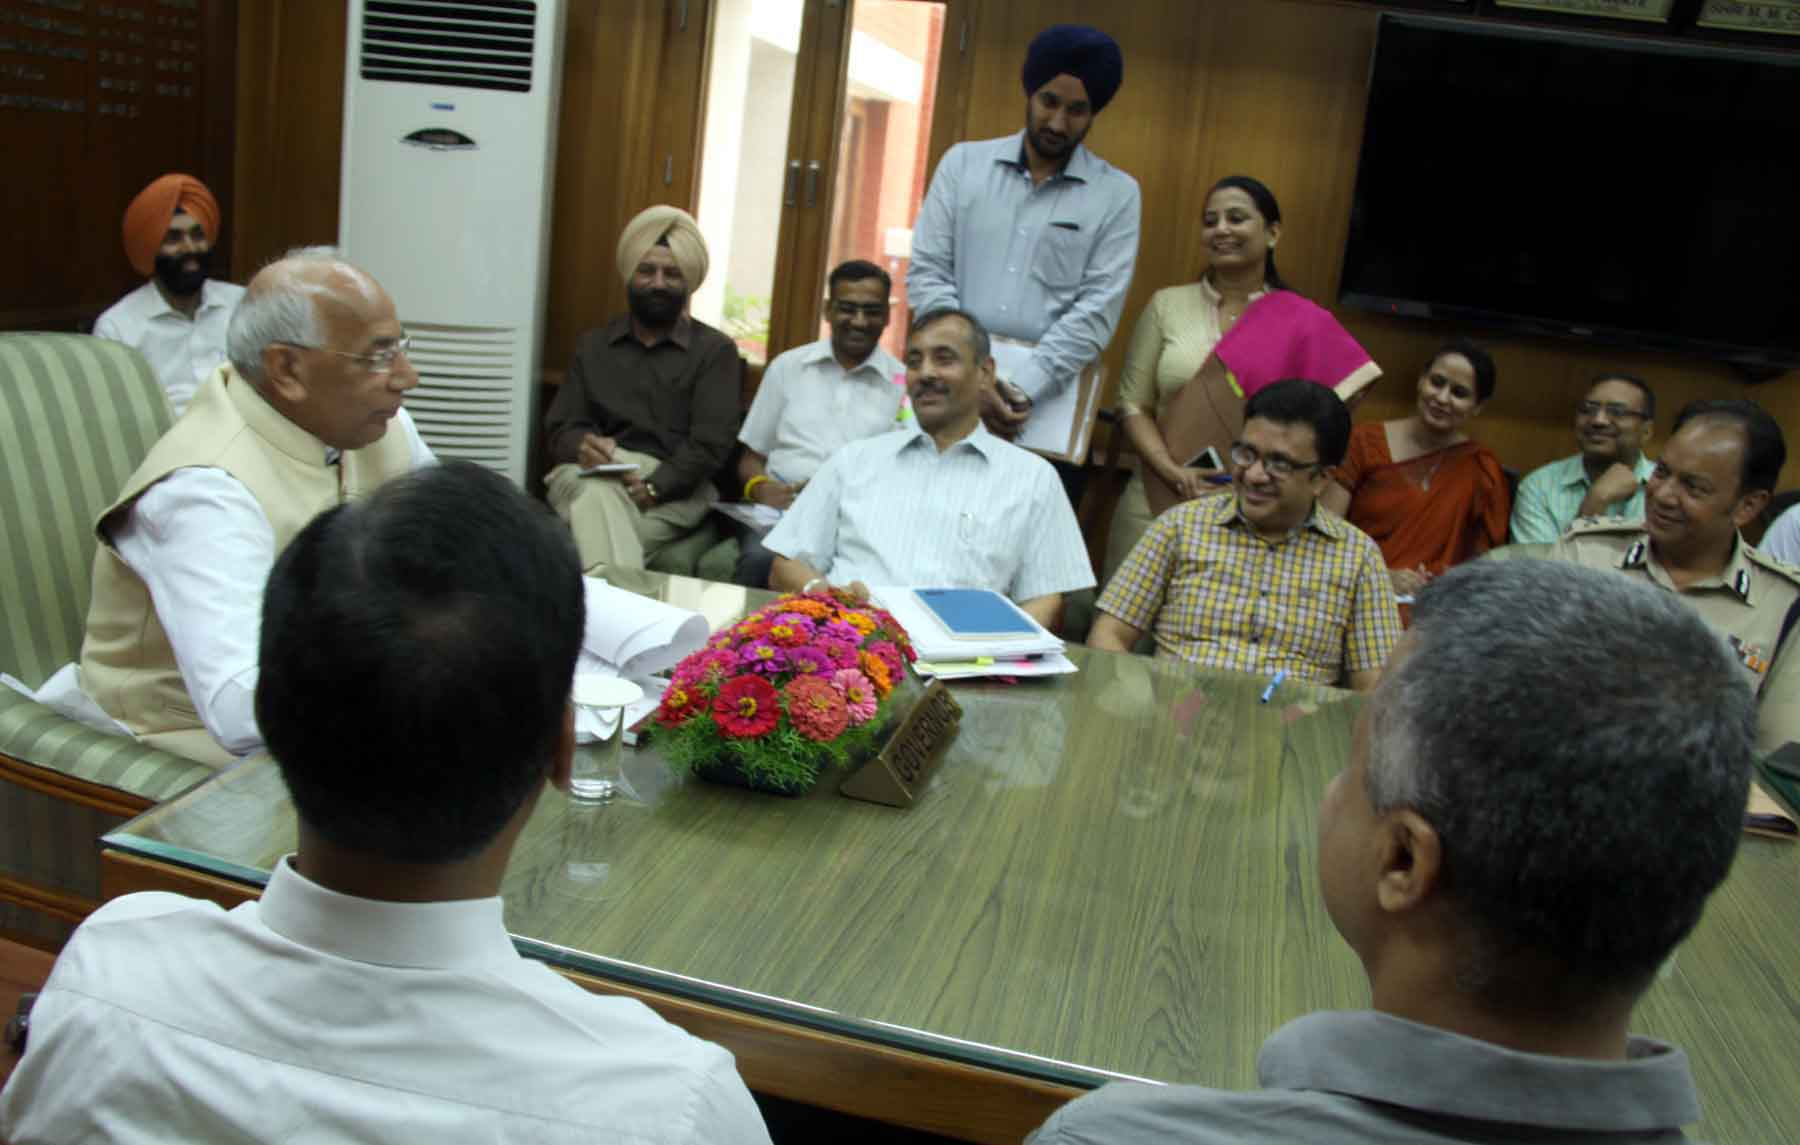 The Governor of Haryana, Punjab  and Administrator, Union Territory, Chandigarh, Prof. Kaptan Singh Solanki, reviewing the arrangements regarding the visit of Prime Minister of India on September11,in a high level meeting of Administrative Secretaries and Heads of All Departments of UT Administration Chandigarh,held in Punjab Raj Bhawan on 1-09- 2015.